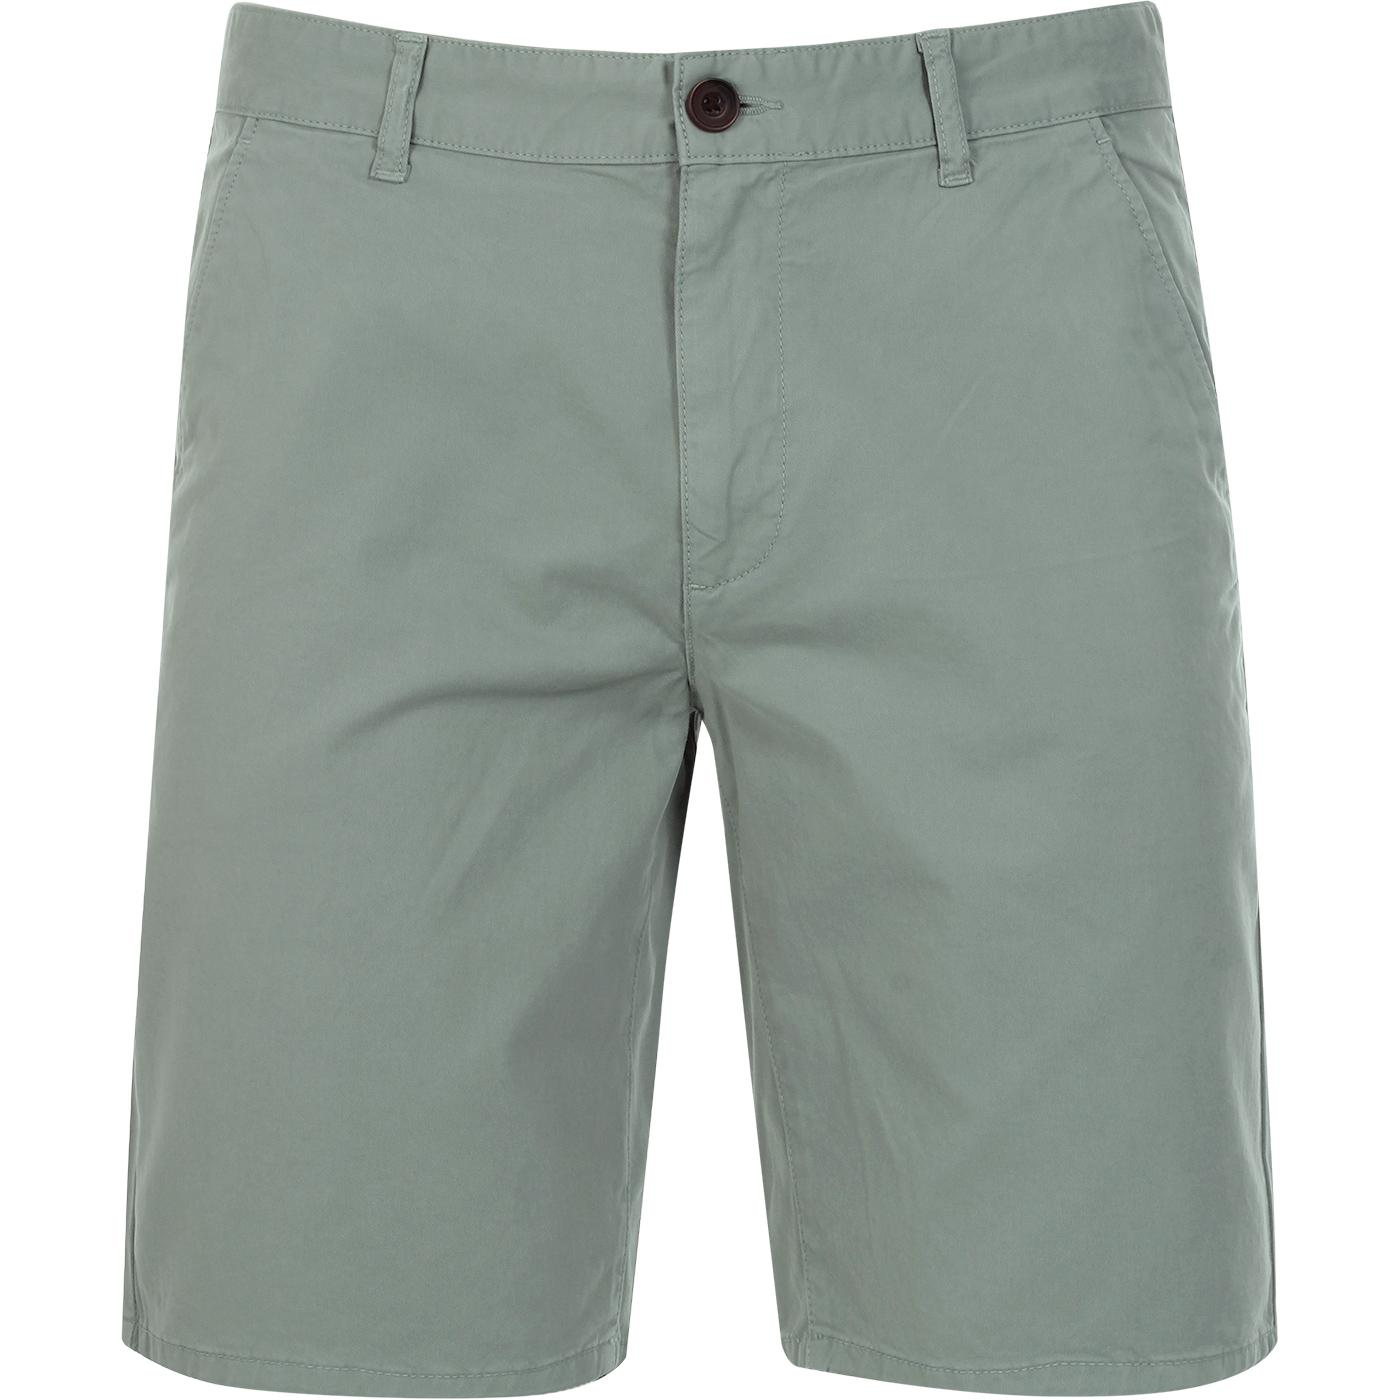 Hawk FARAH Men's Retro Chino Shorts (Green Mist)